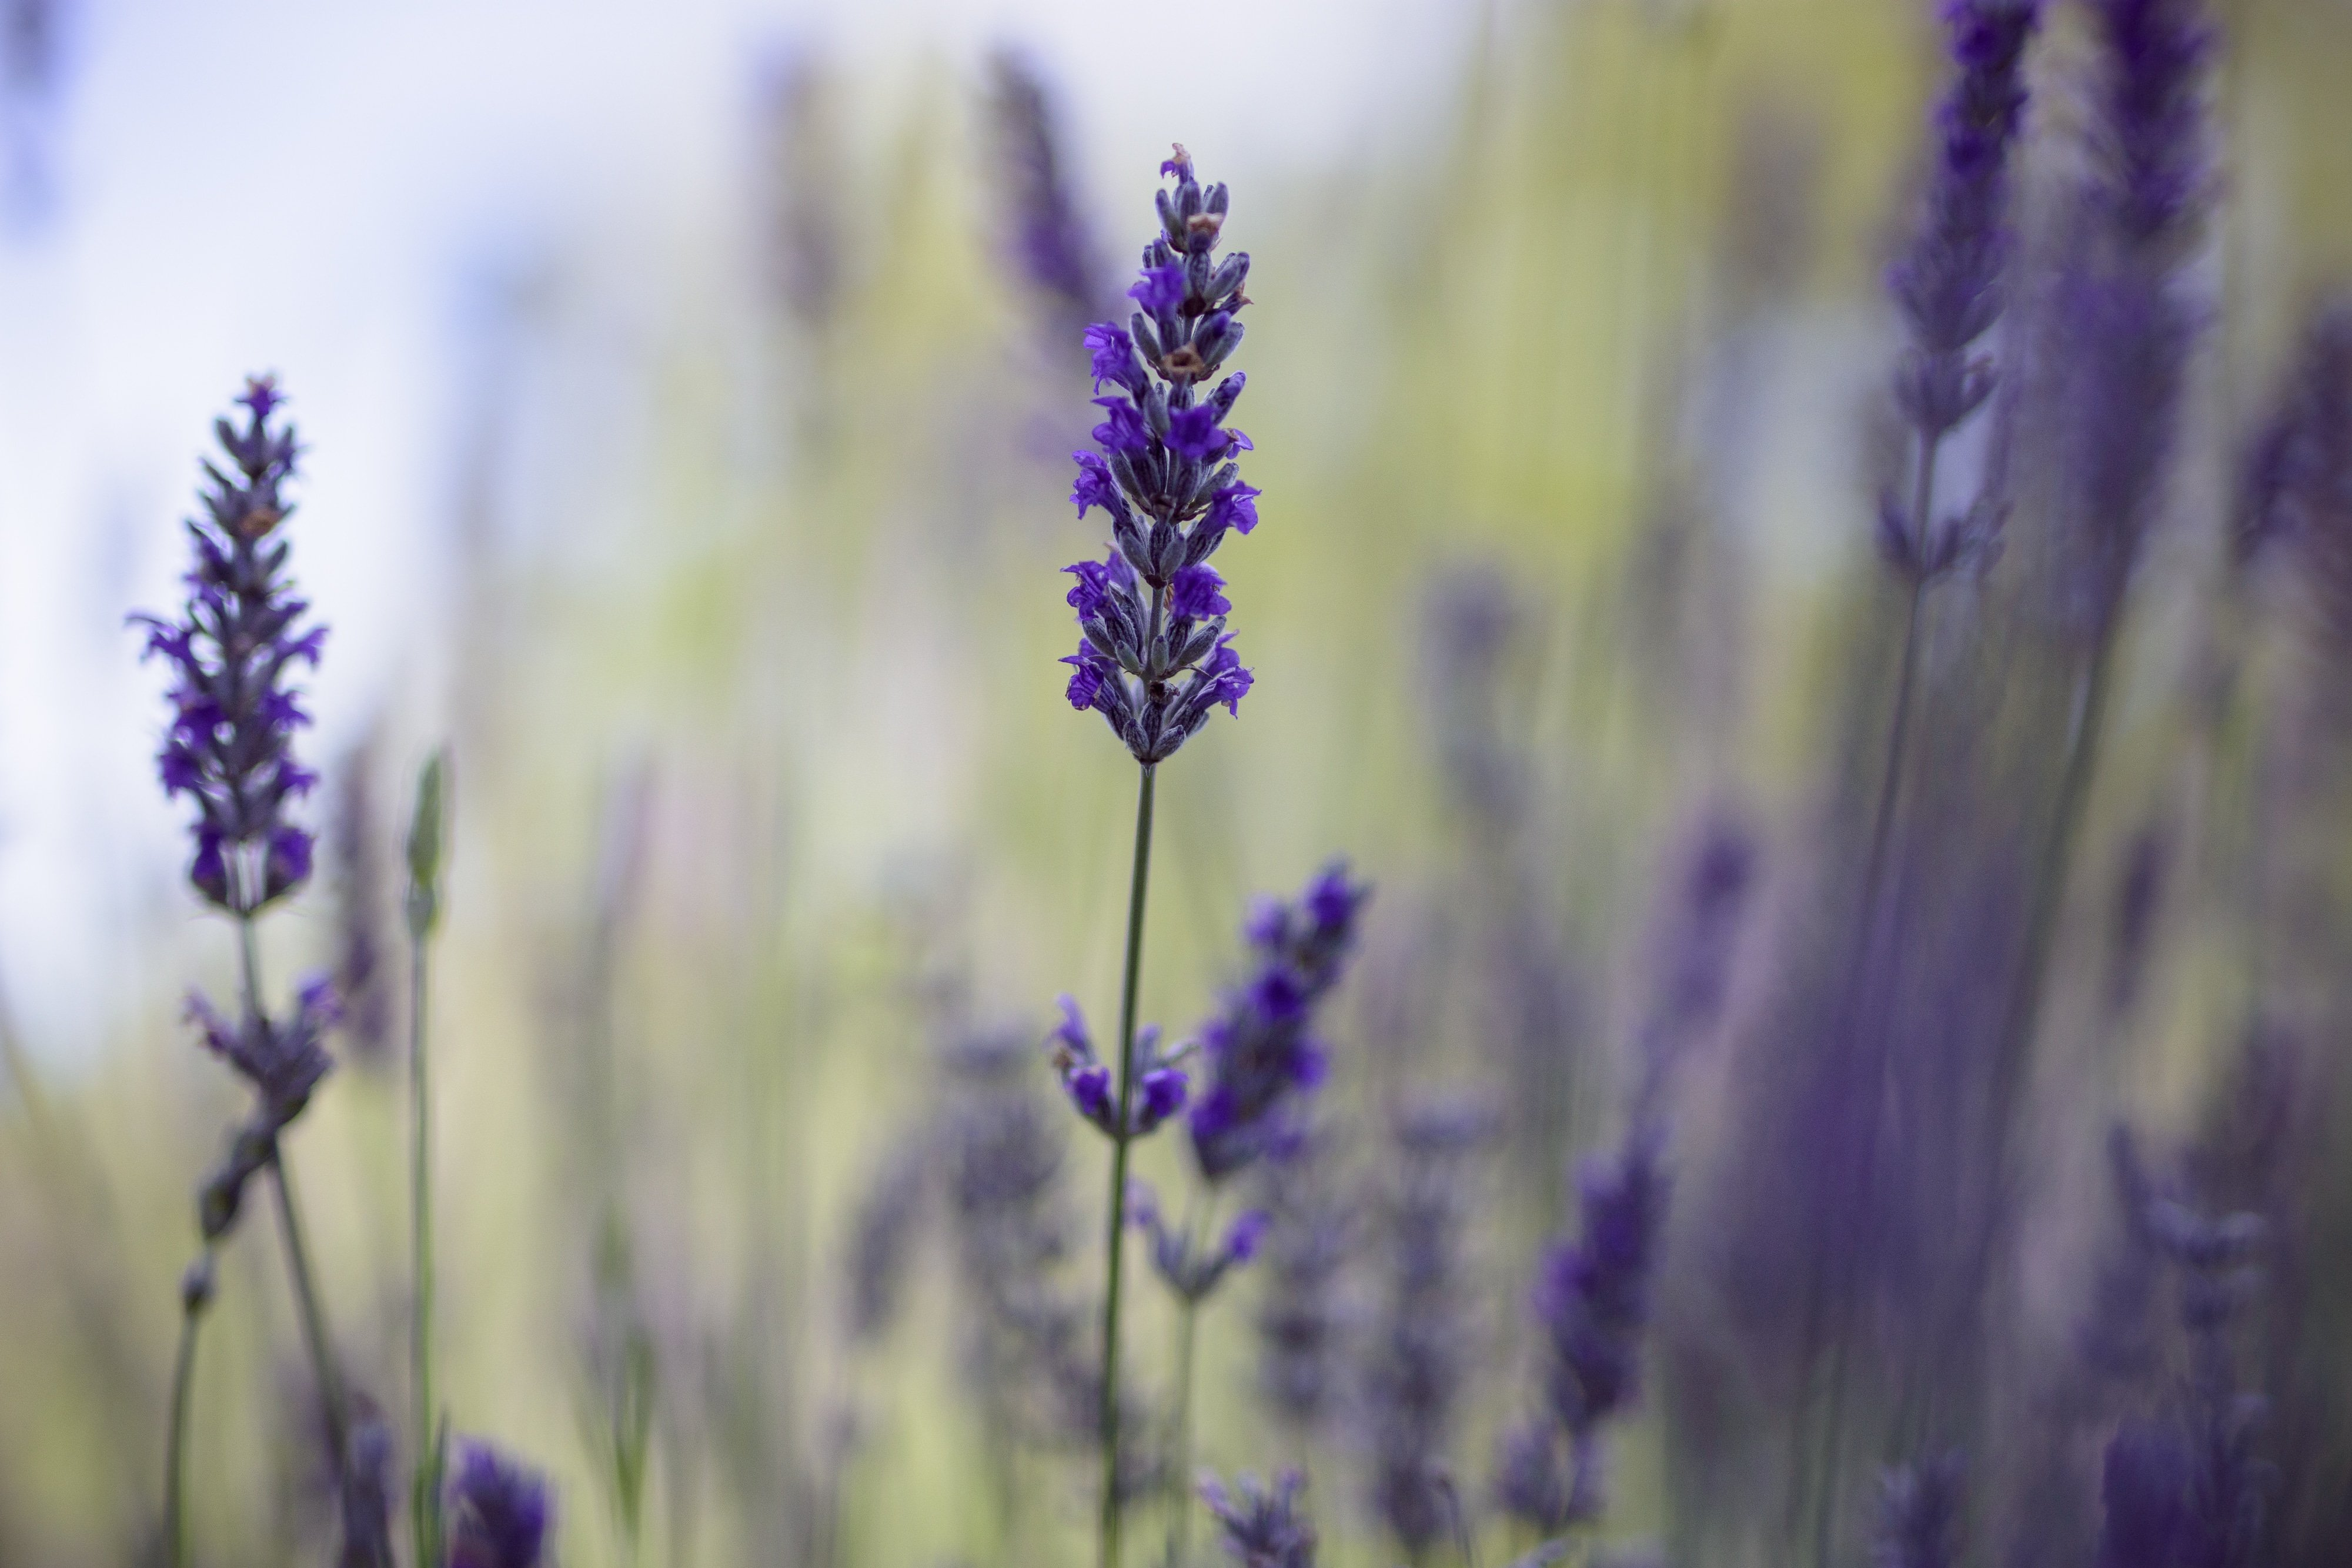 A close up of a stem of lavender with the rest of the plant blurred behind it.